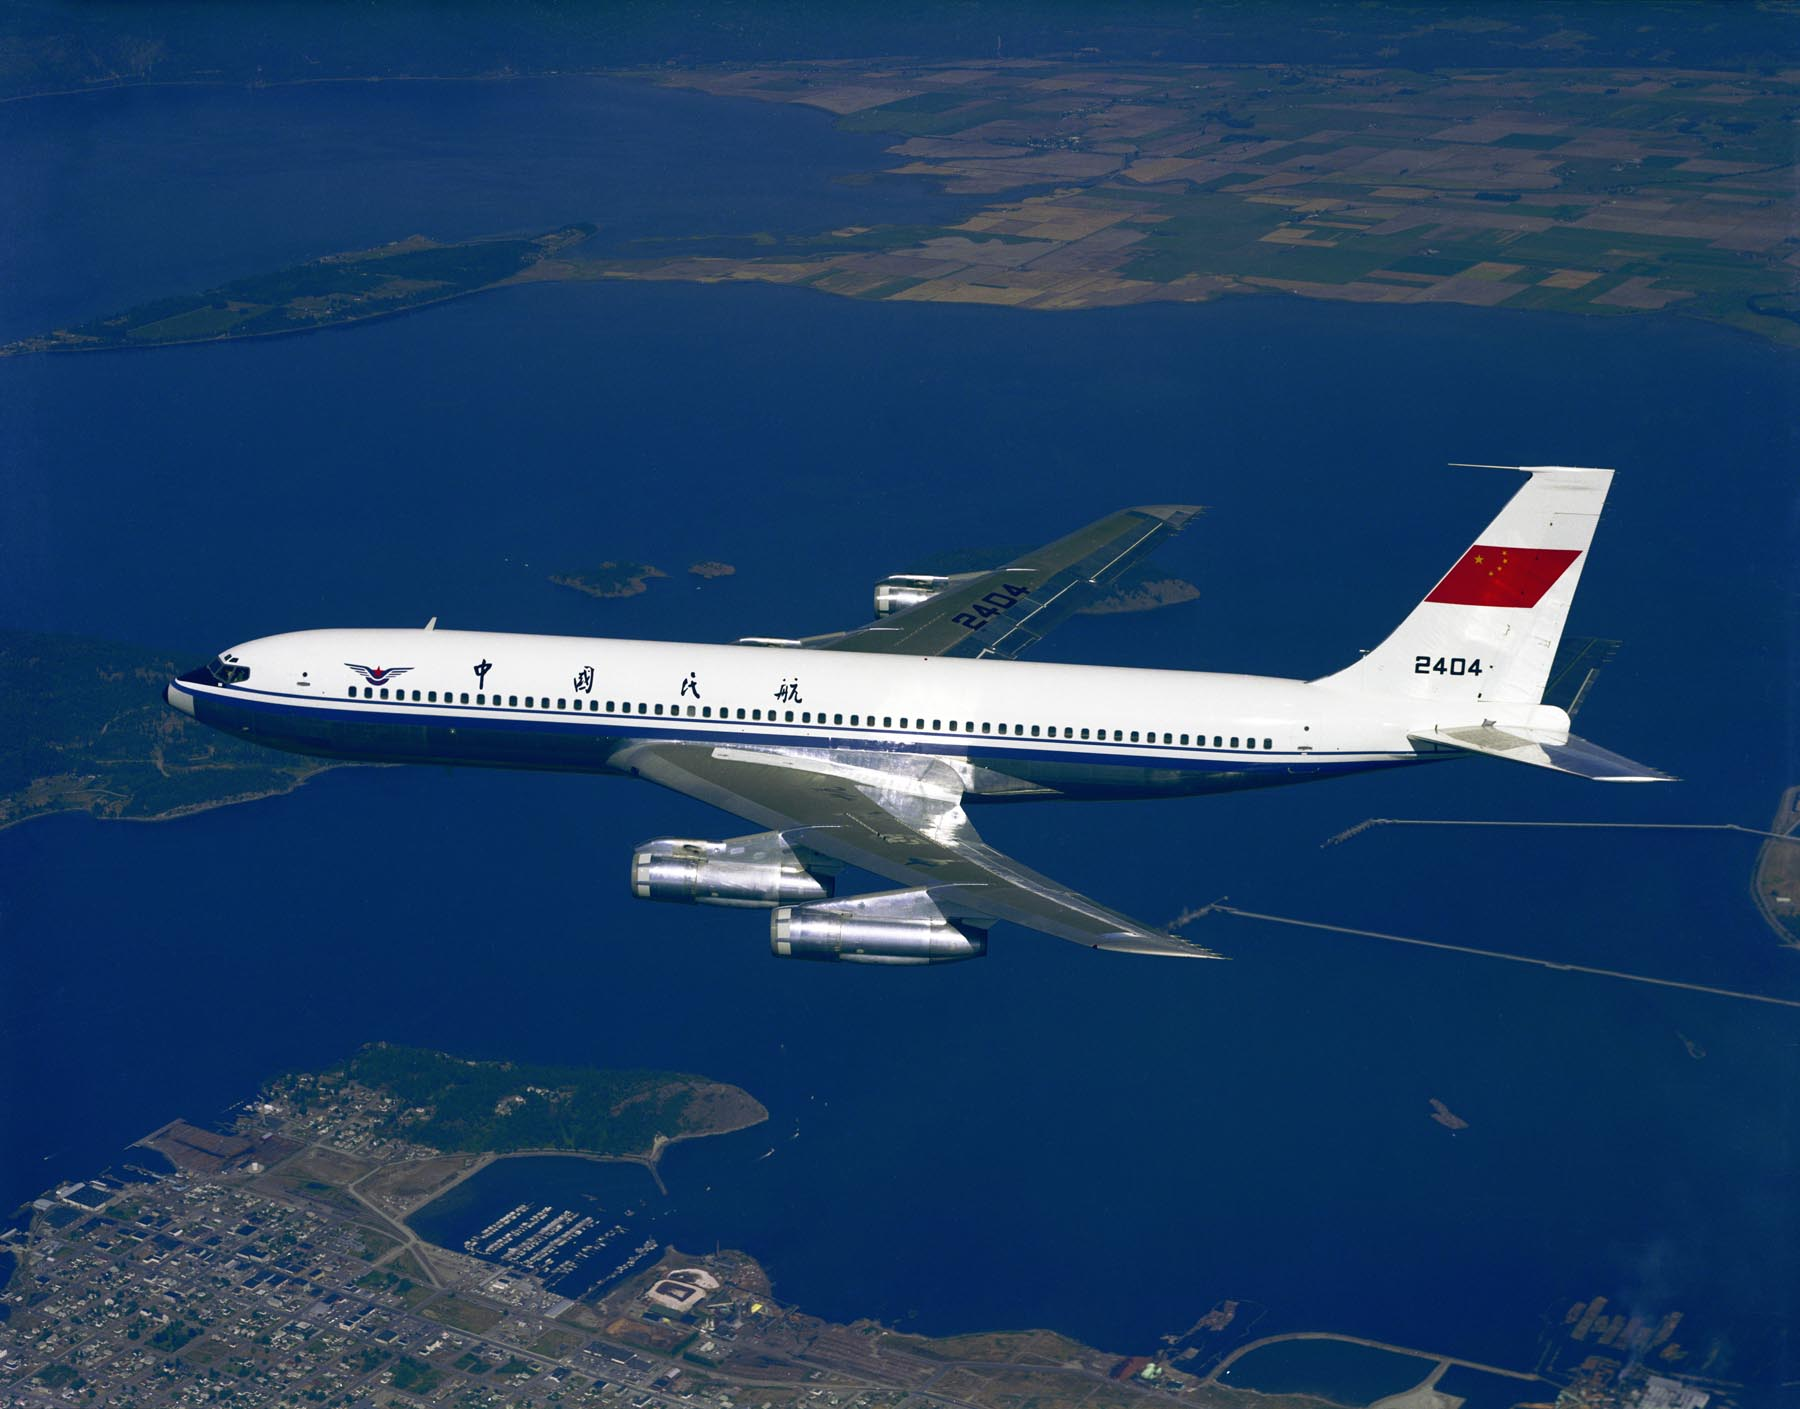 The Boeing 707 was a hugely popular passenger aeroplane up until the early 2000s. Image source: Wikimedia Commons